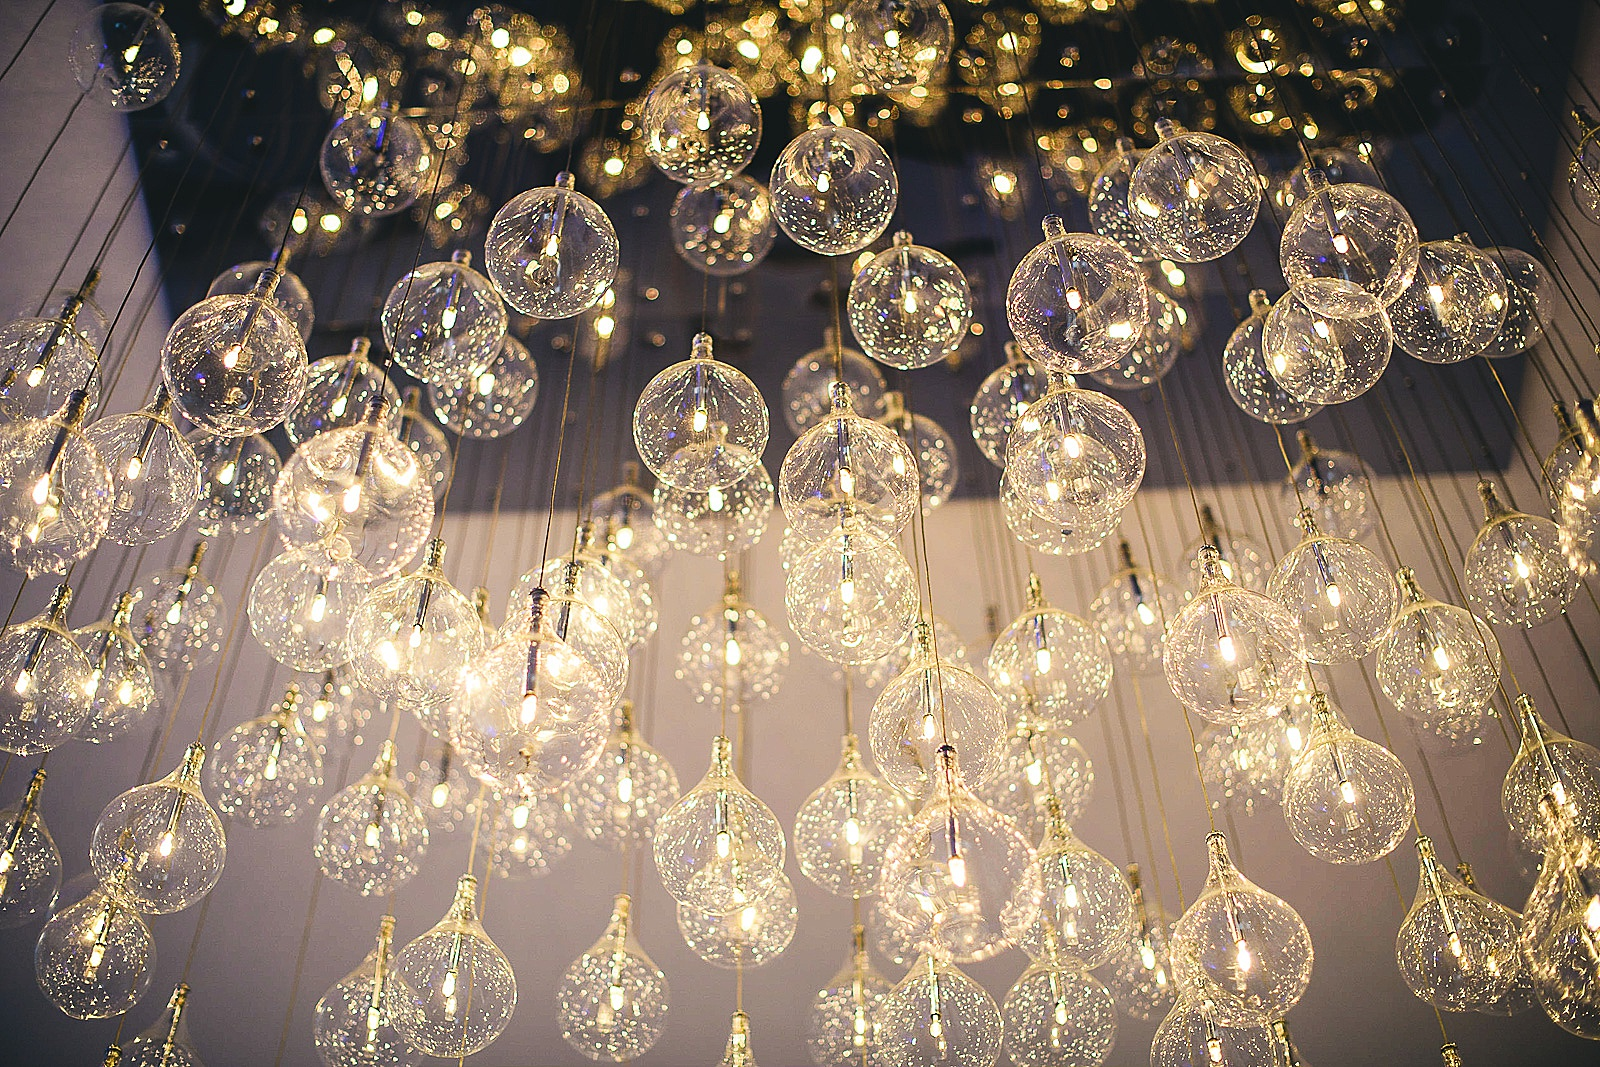 36 lights - Audrey + Jake's Beautiful Chicago Wedding at Chez